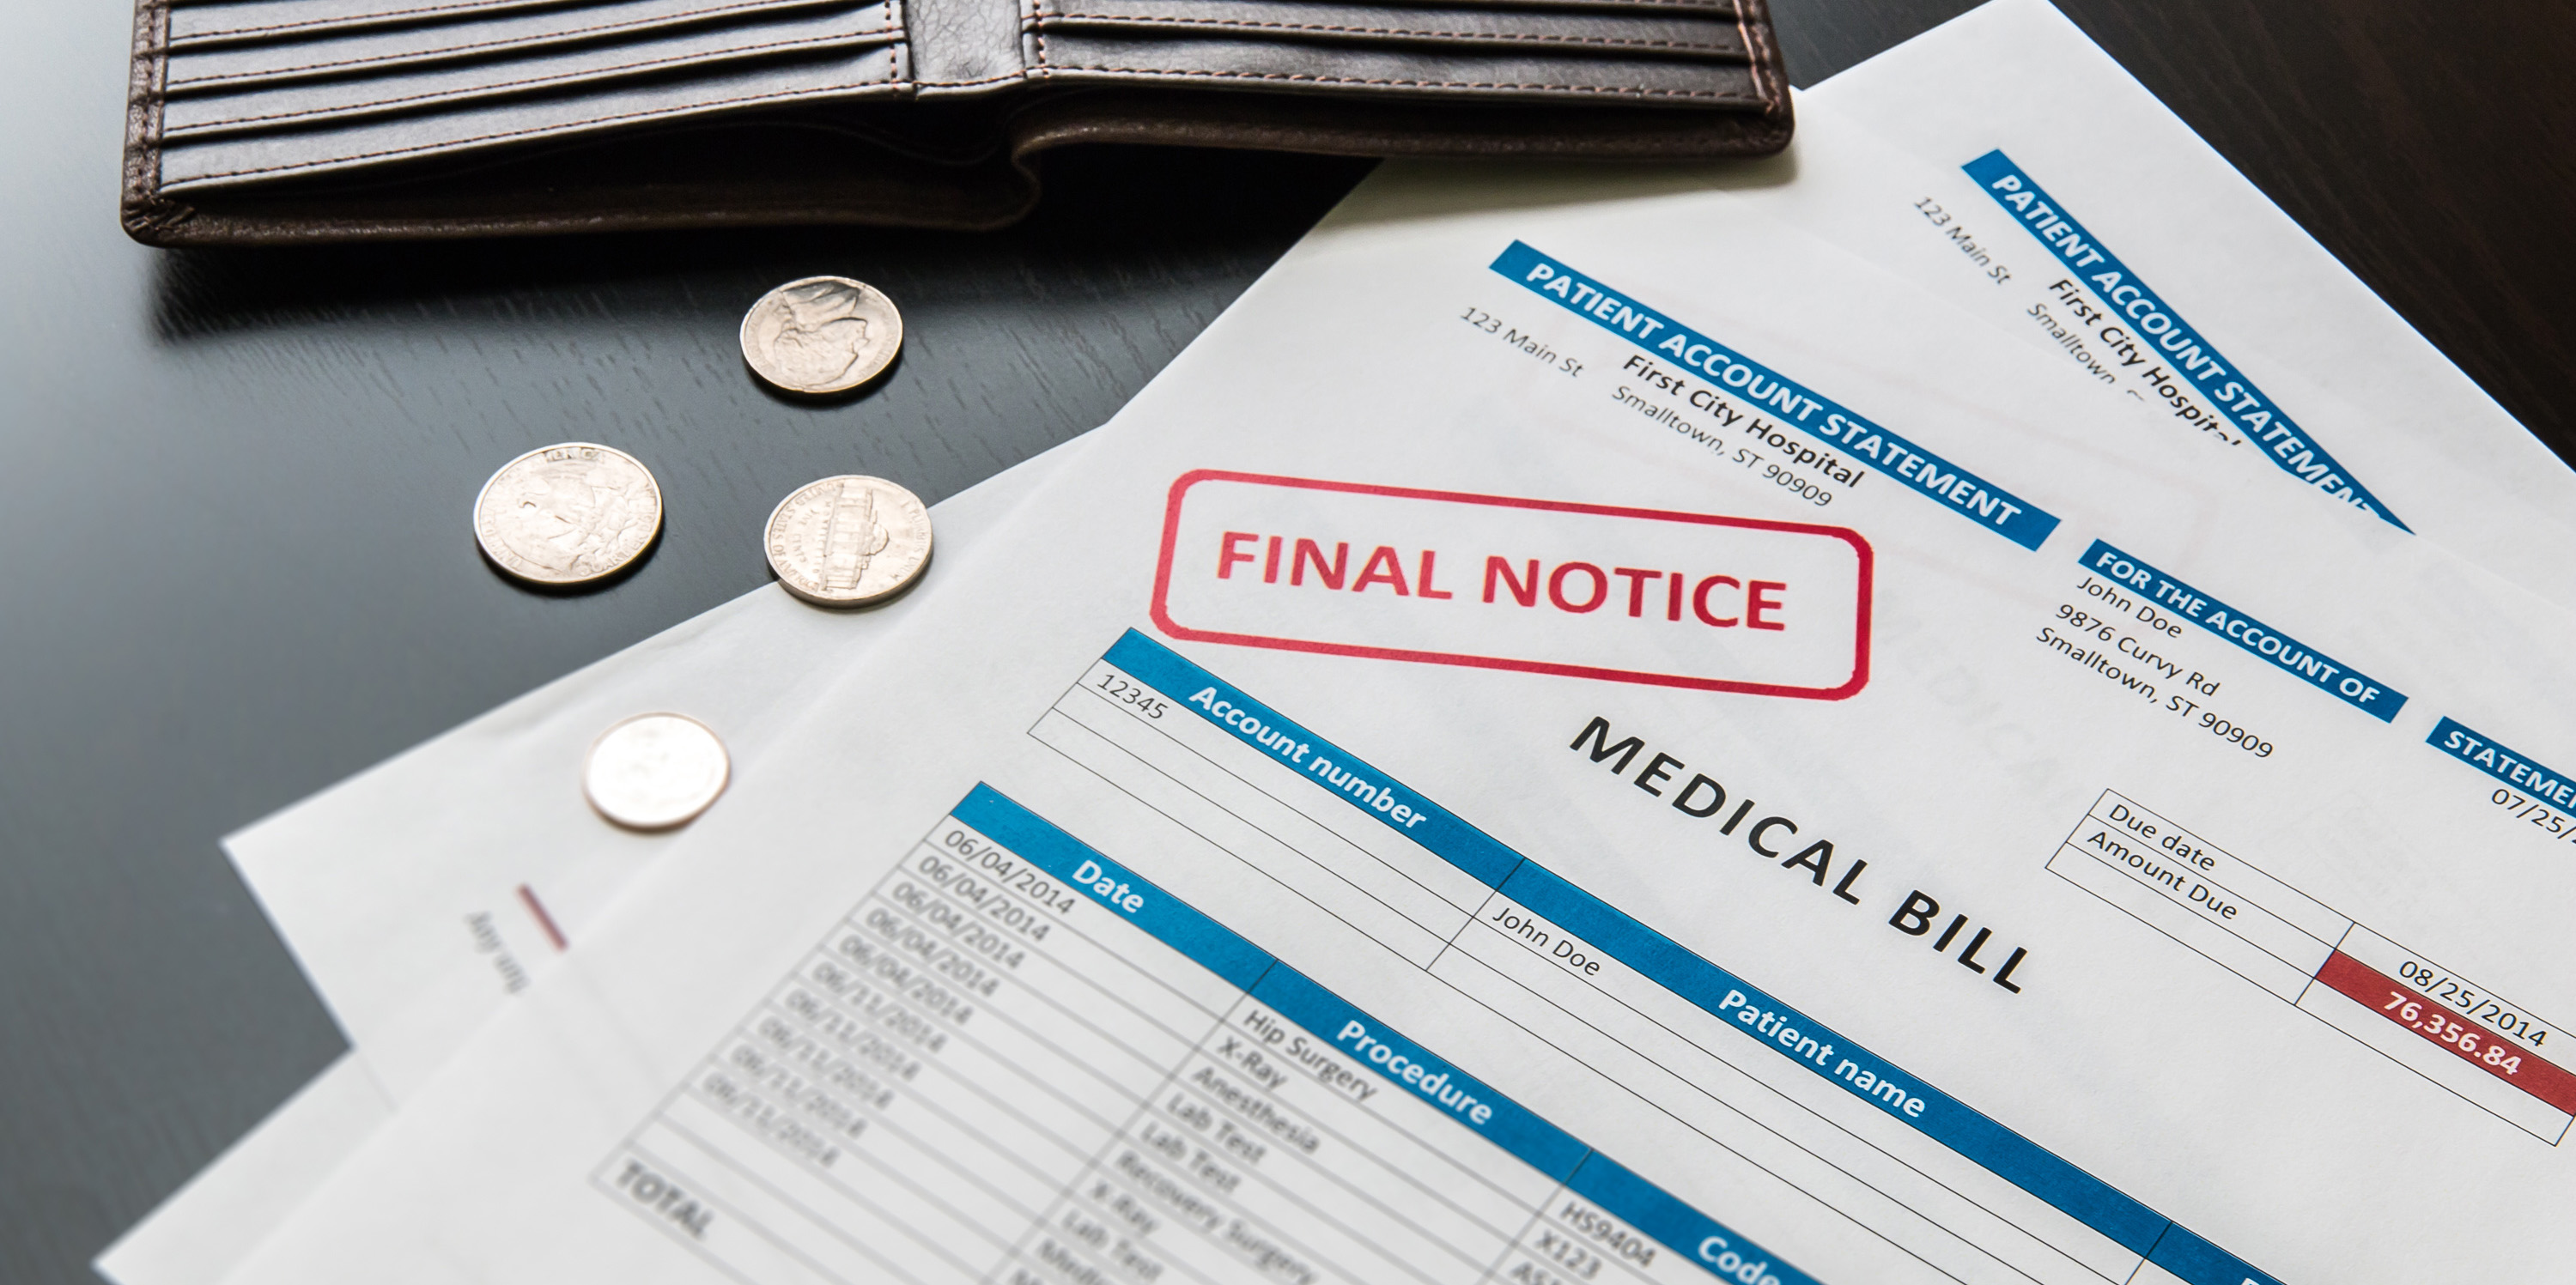 Preventing and Tackling Medical Debt